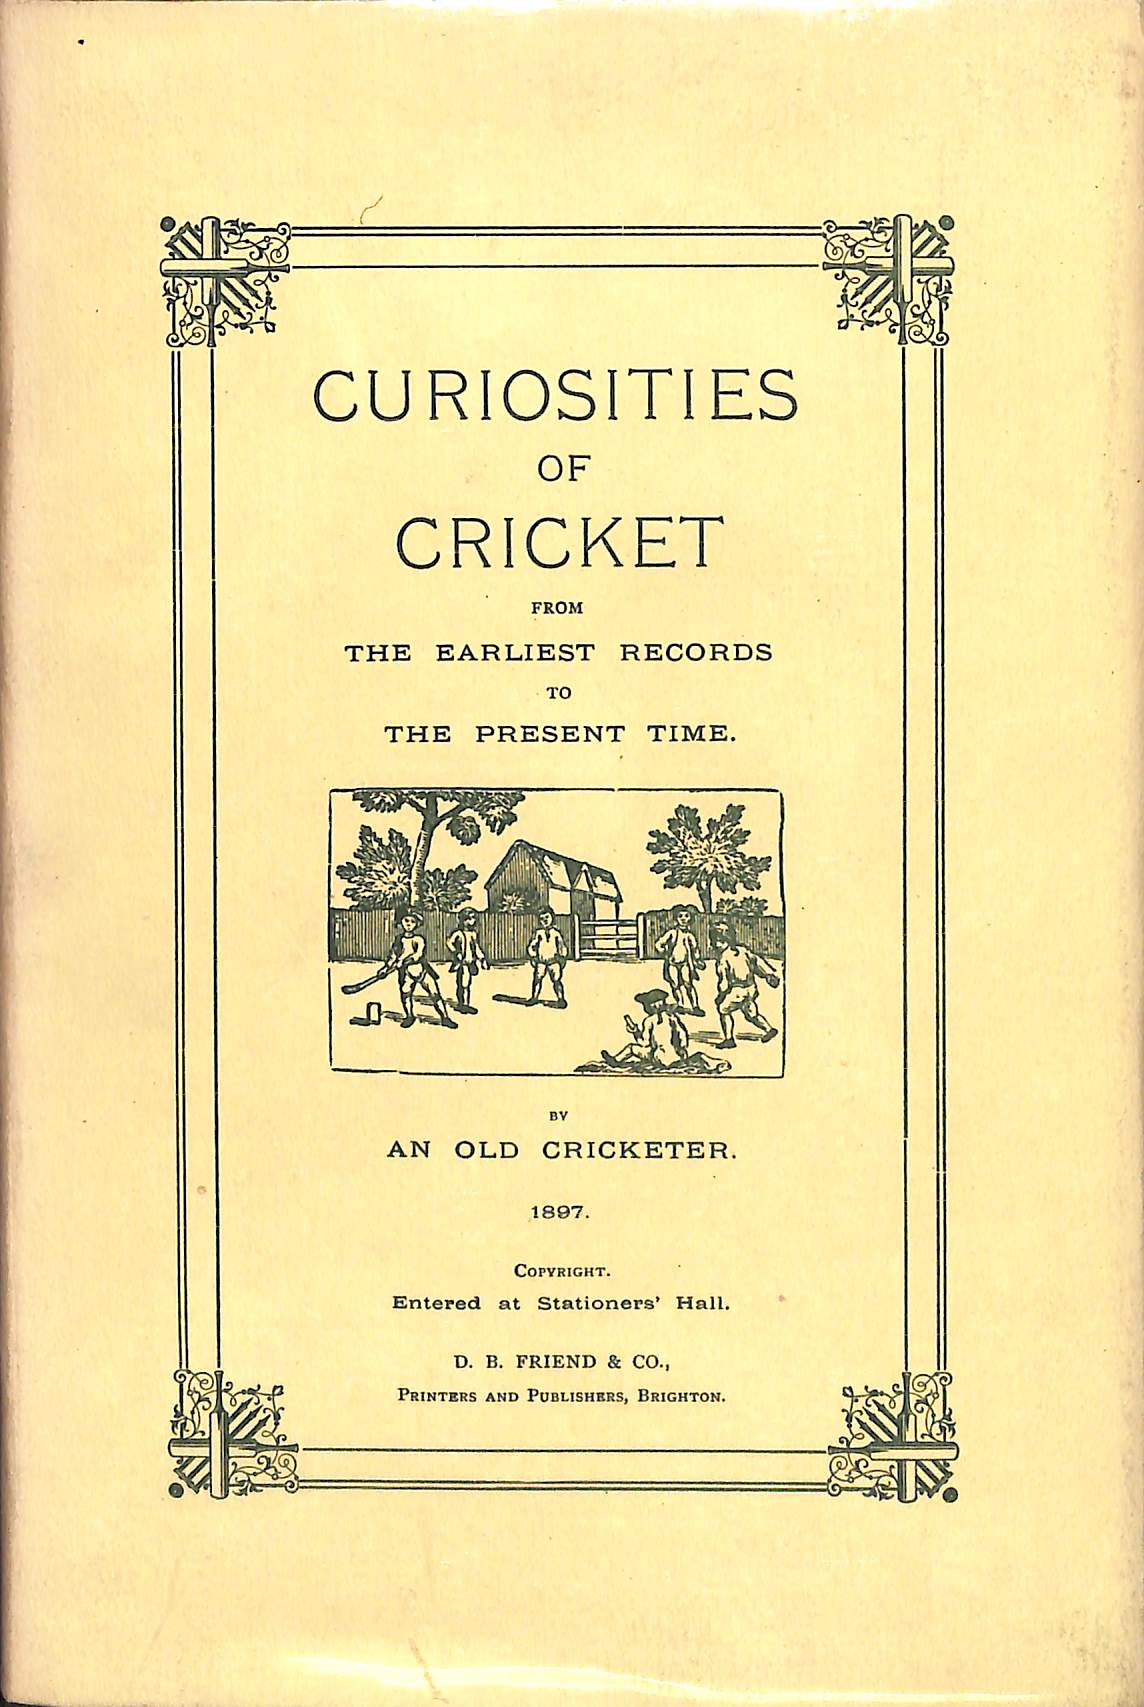 Curiosities of Cricket: From The Earliest Records to The Present Time